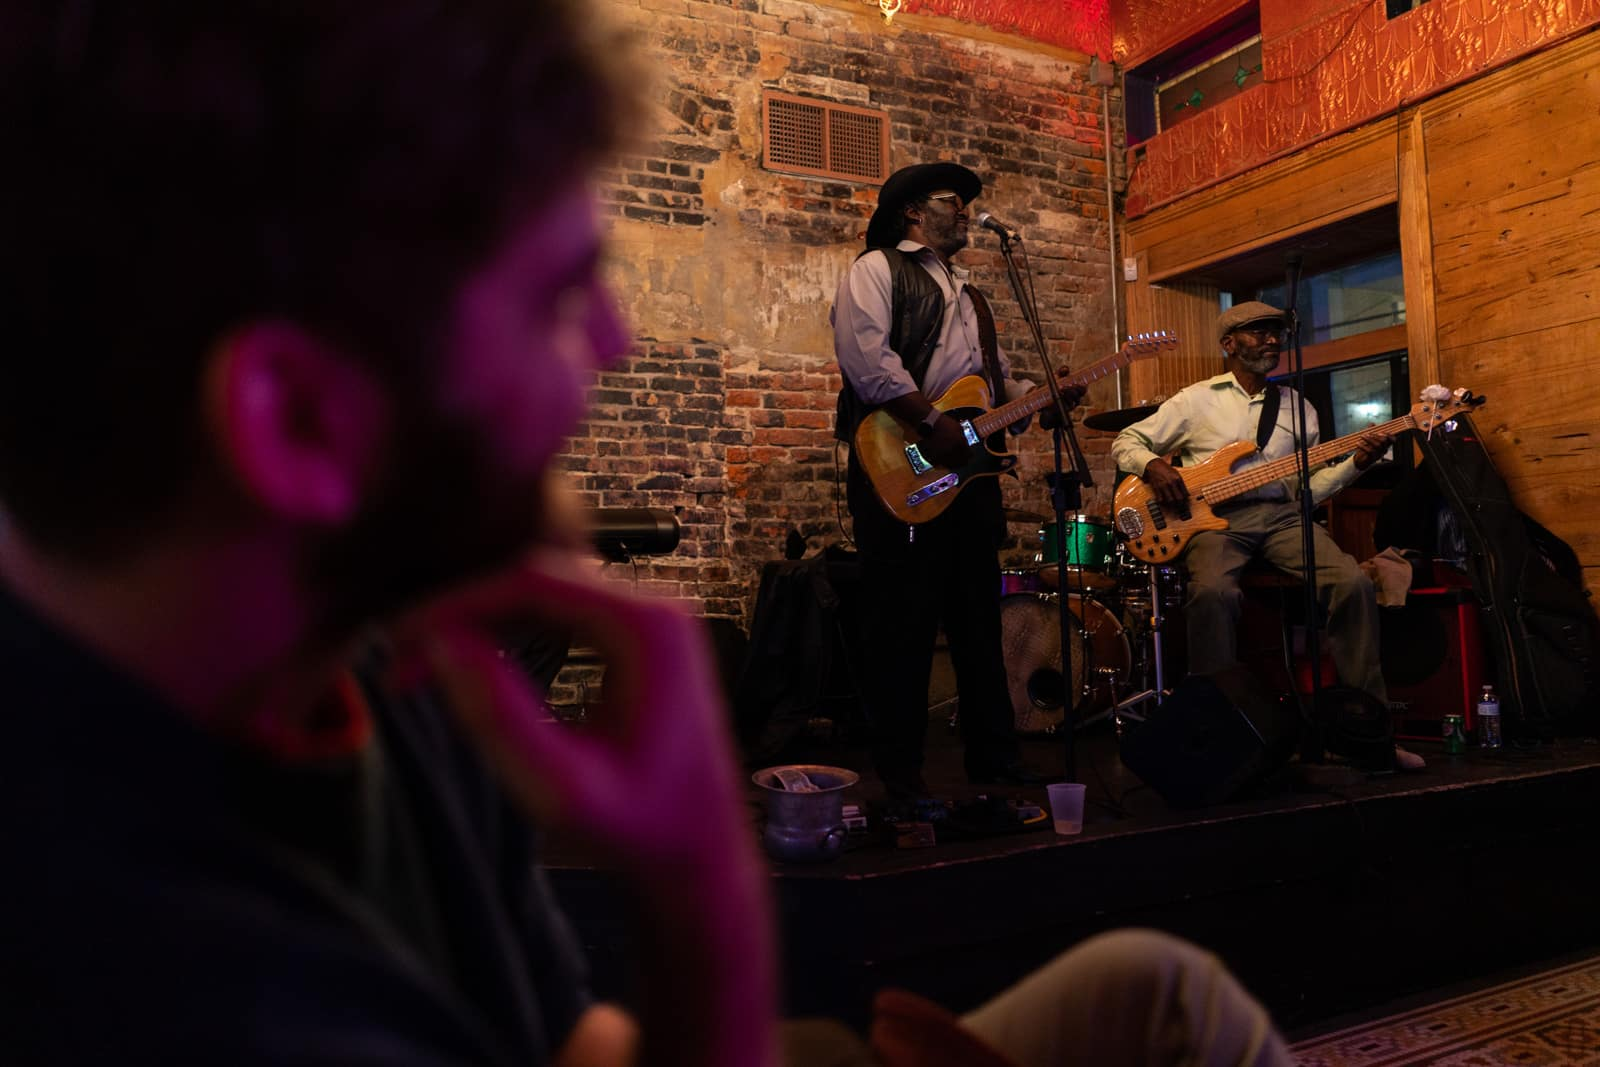 Reflections - Live music at a Frenchmen Street bar in New Orleans, Louisiana - Lost With Purpose travel blog